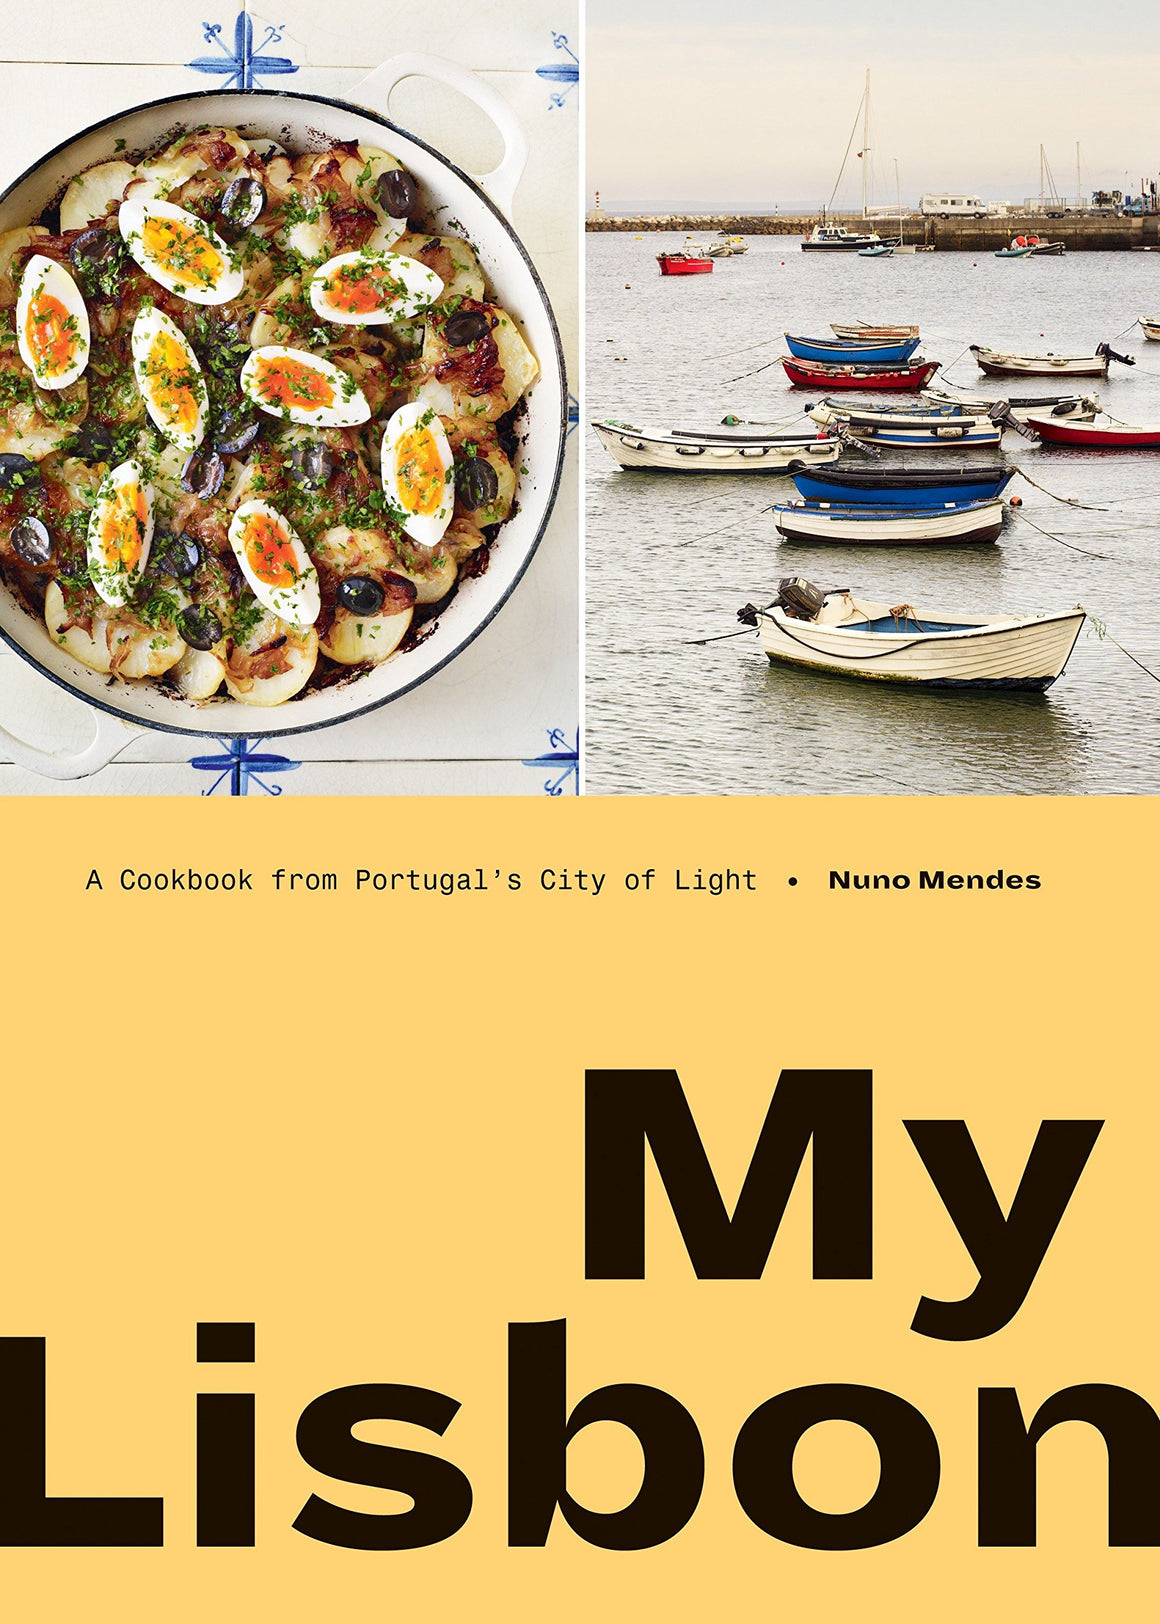 Nuno Mendes. My Lisbon: A Cookbook from Portugal's City of Light